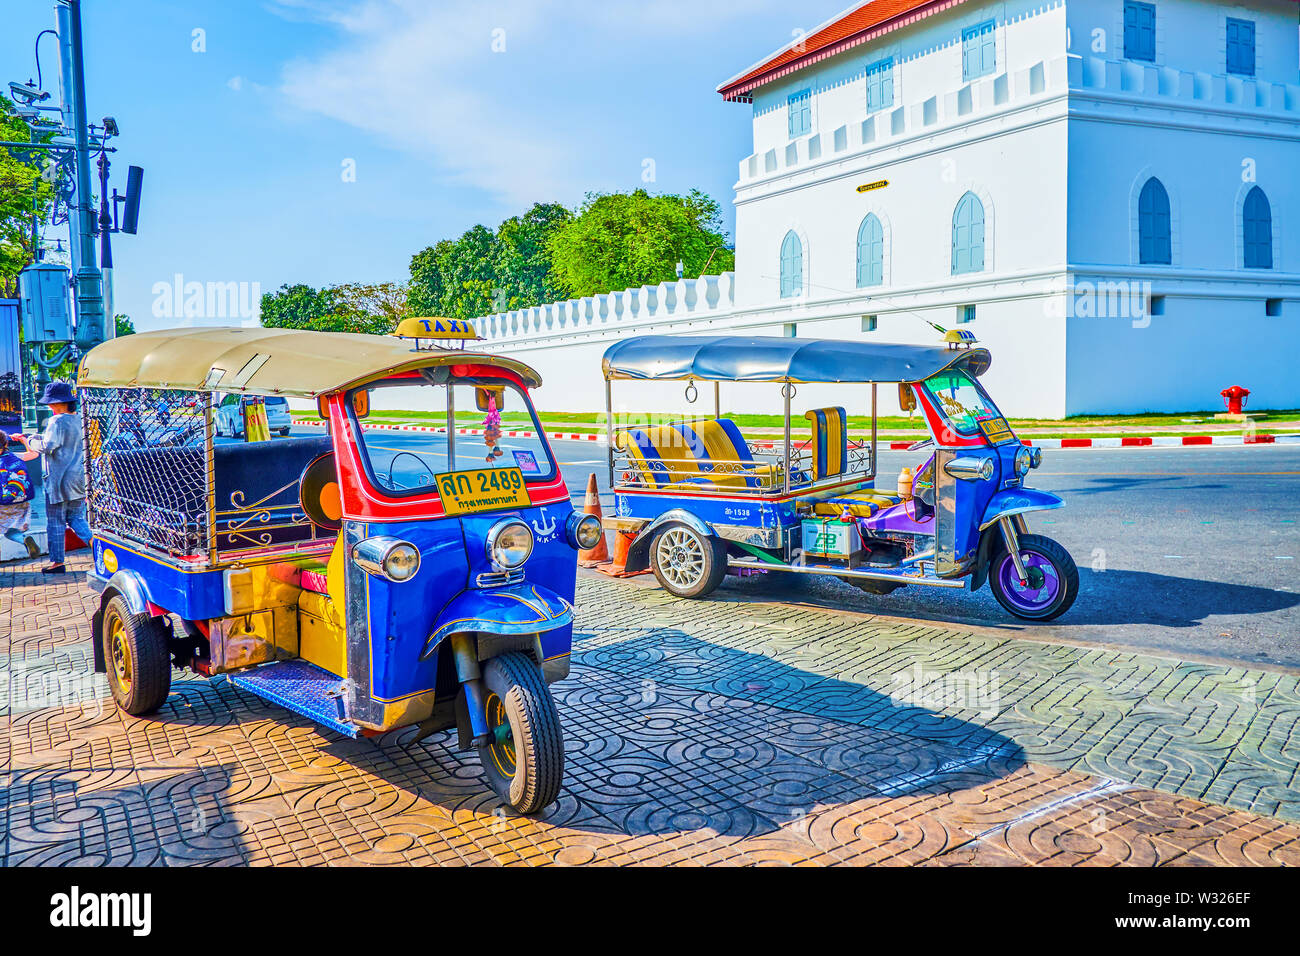 BANGKOK, THAILAND - APRIL 22, 2019: A tuk tuk ride along the busy streets of the city is one of the most exciting adventures in central district, on A - Stock Image